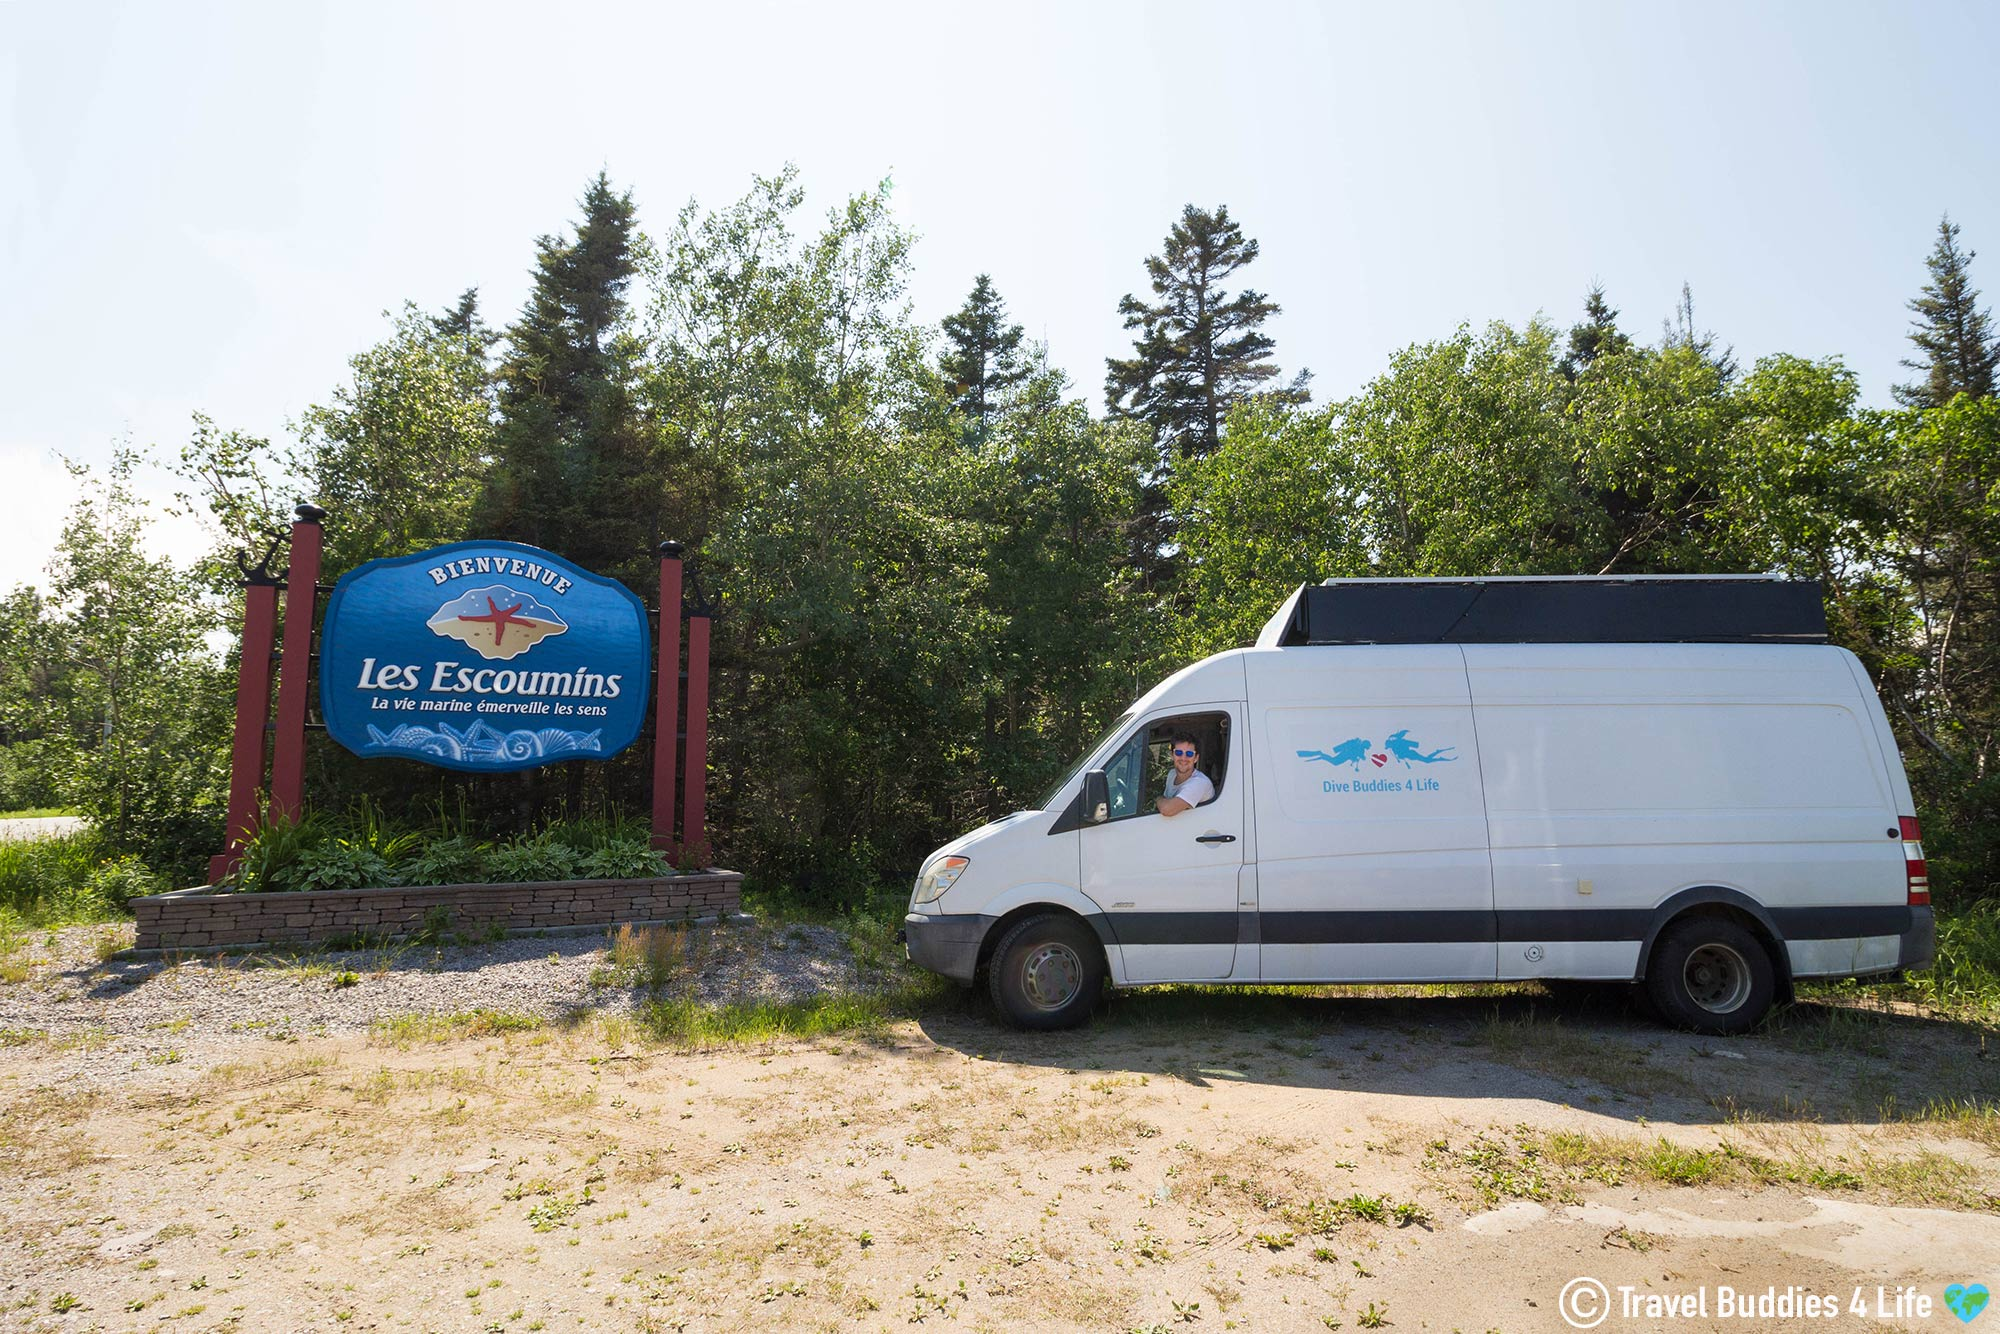 Joey In The Scuba Diving Van Travelling To Les Escoumins For A Diving Adventure, Quebec, Canada